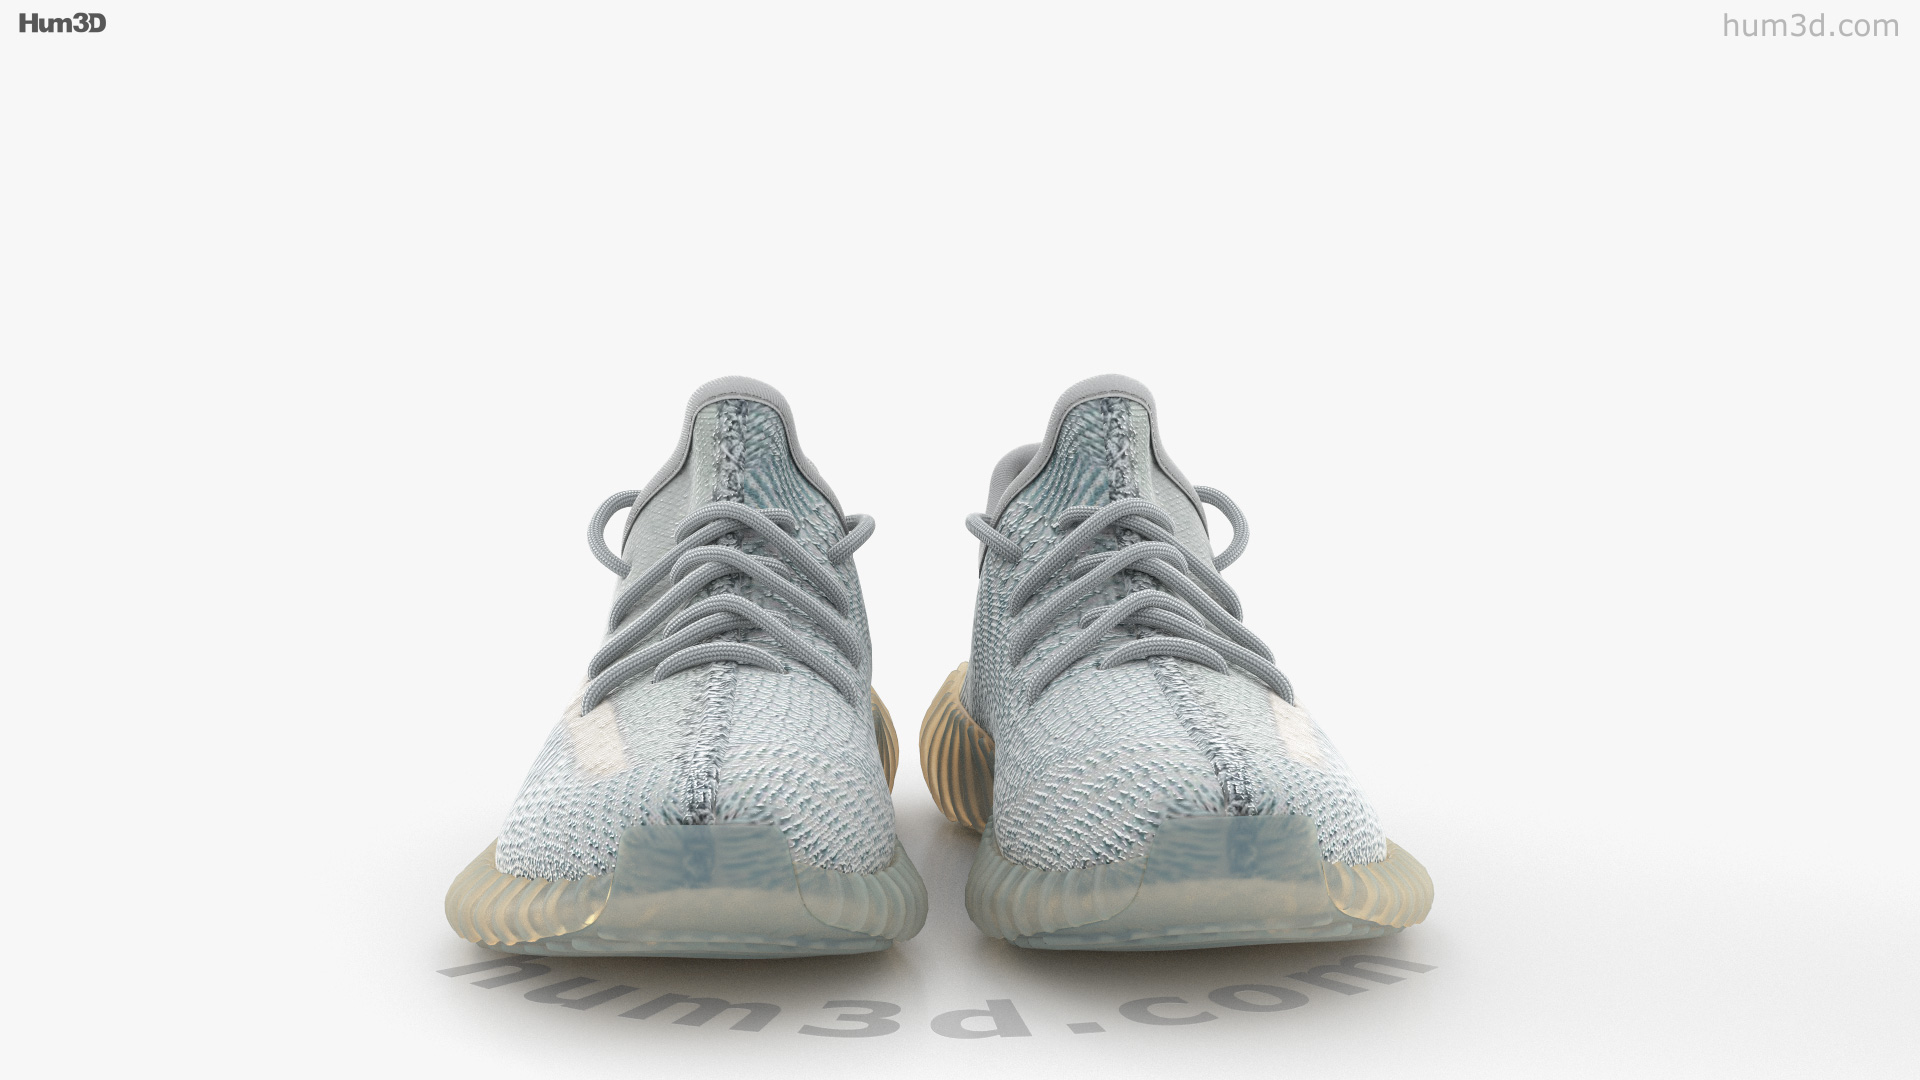 360 view of Adidas Yeezy Boost 350 3D